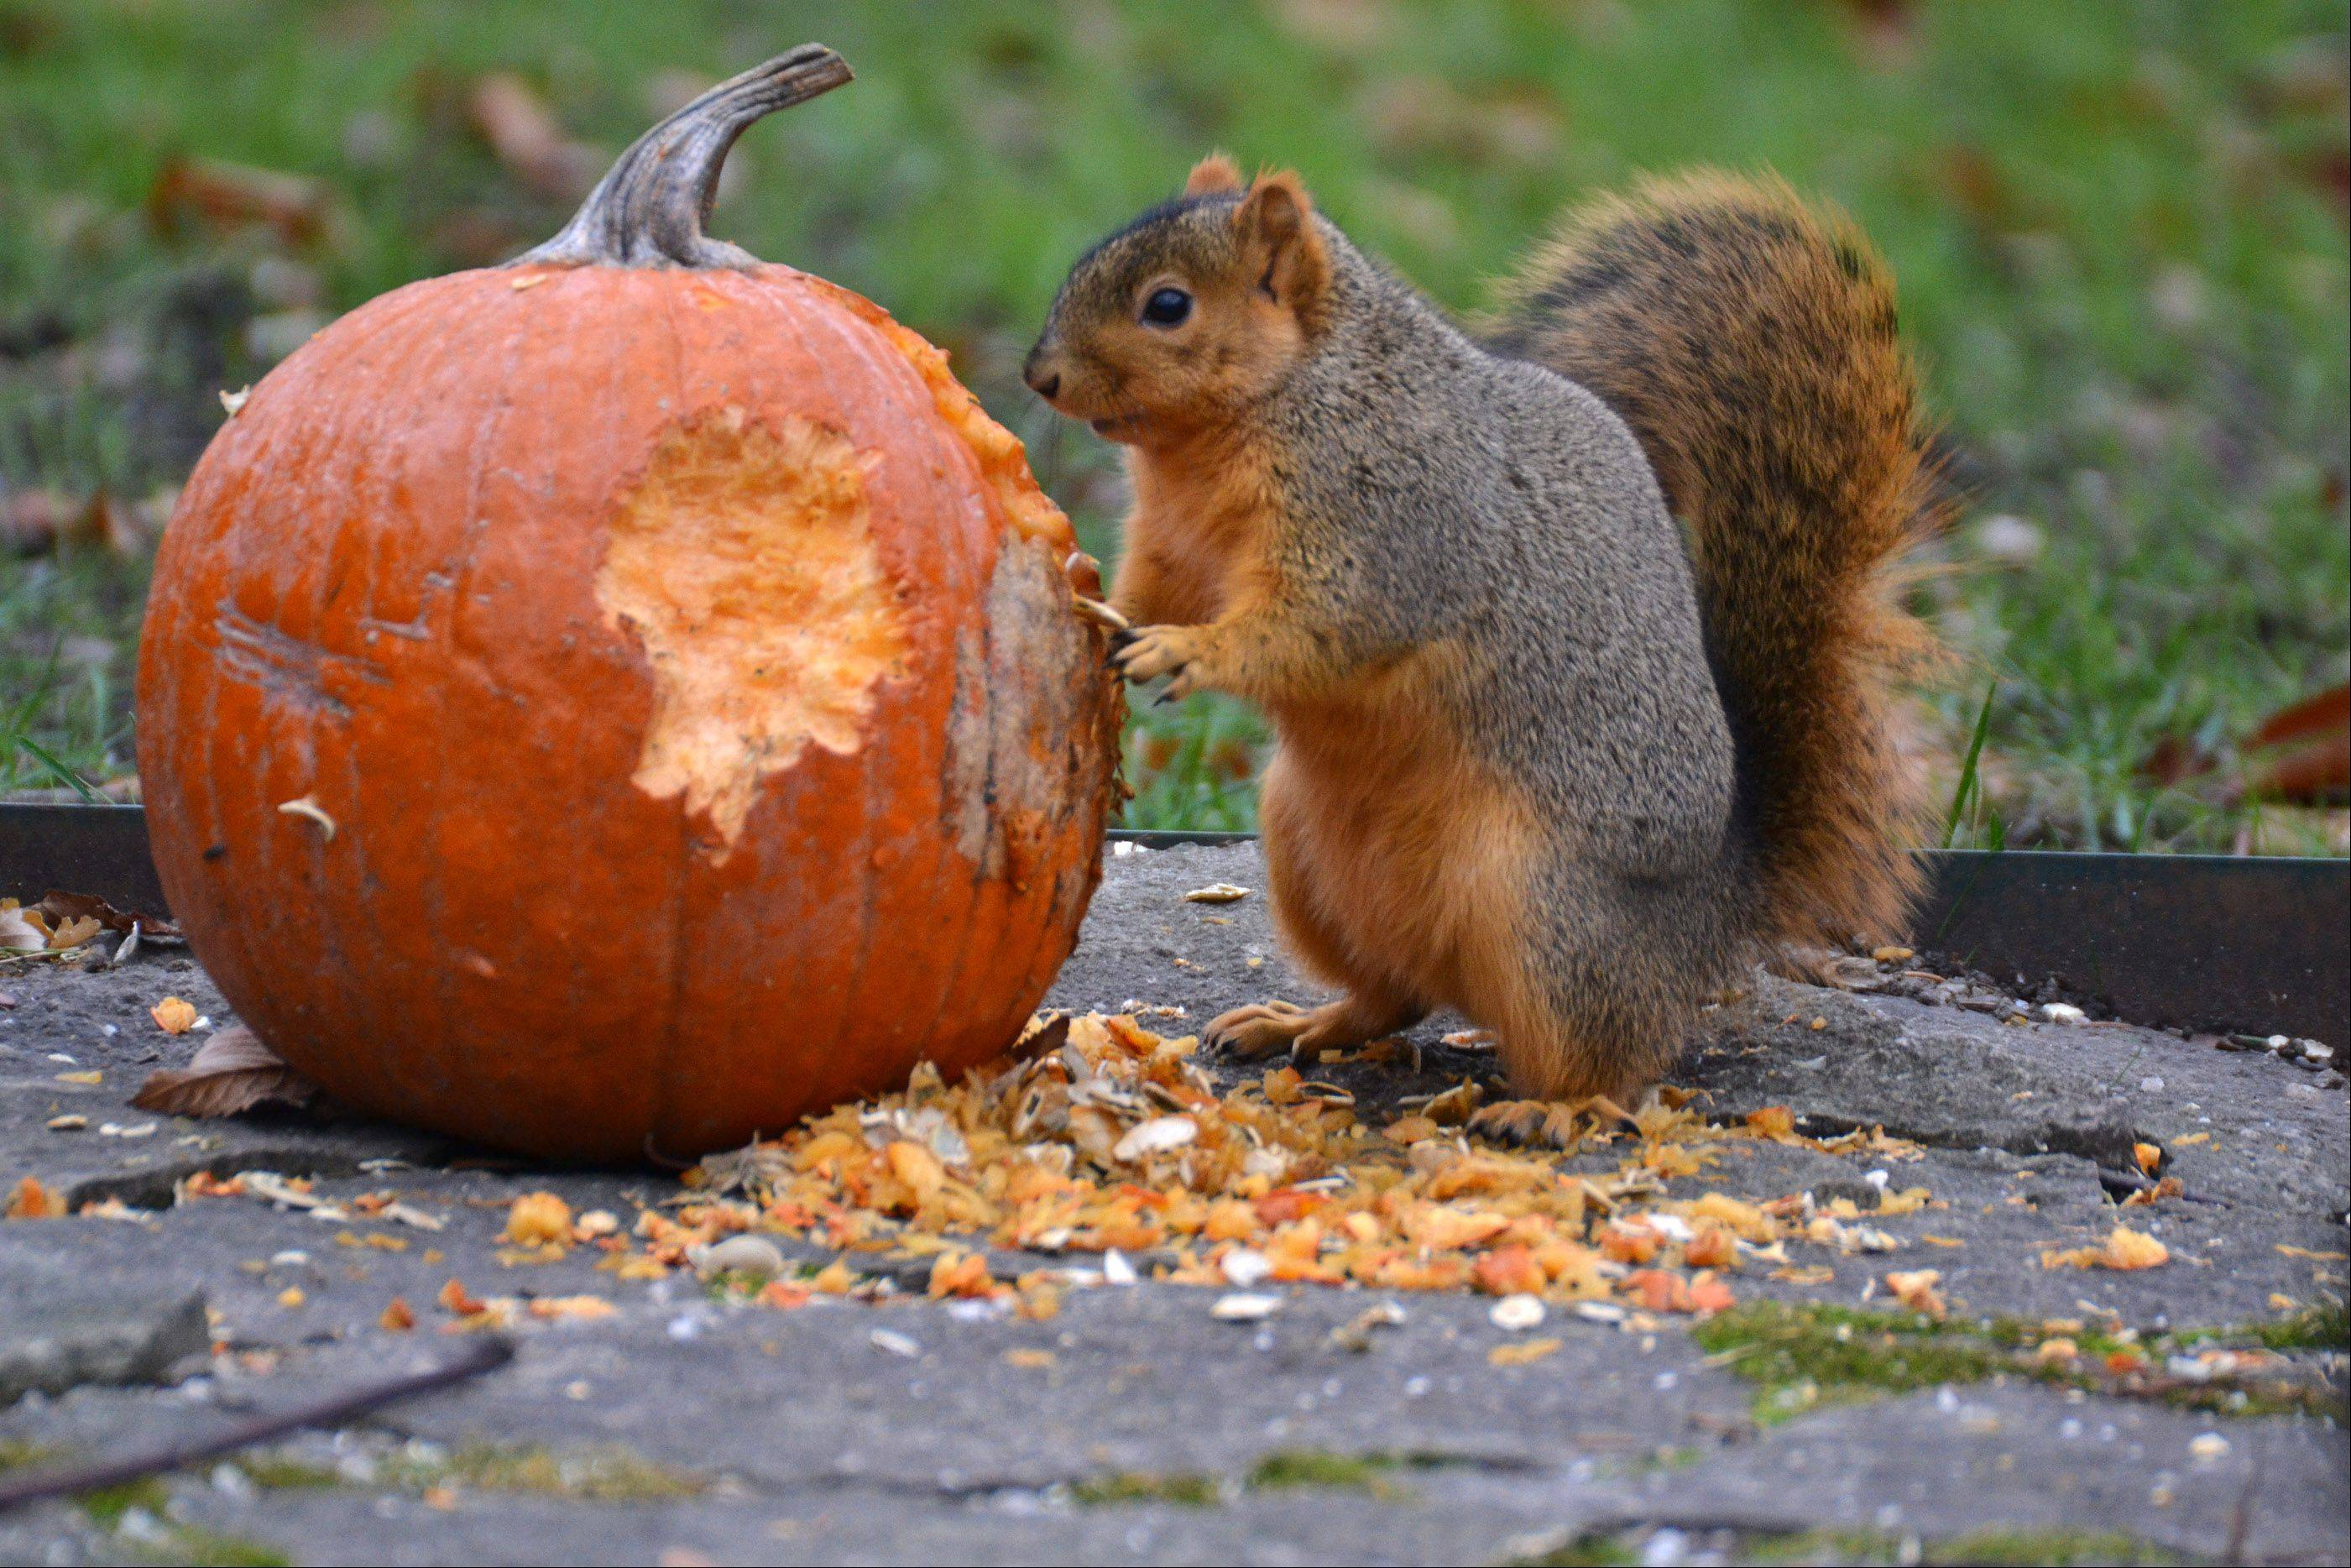 In our backyard, even the squirrels deserve a Thanksgiving dinner!